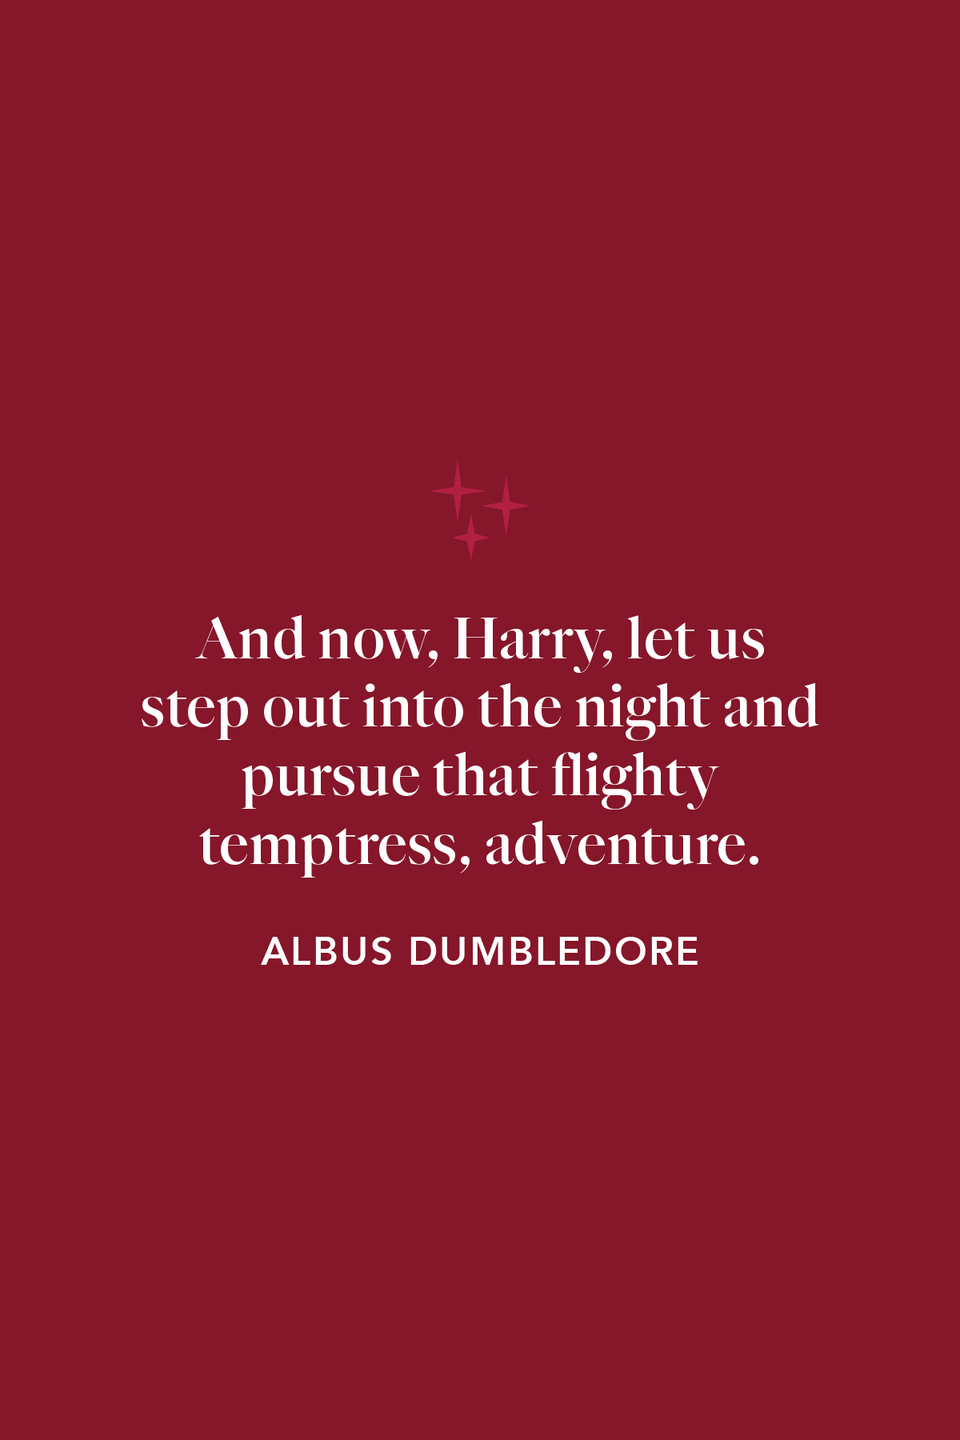 """<p>""""And now, Harry, let us step out into the night and pursue that flighty temptress, adventure,"""" the ancient wizard says in chapter 3 of <em>The Half-Blood Prince</em>.</p>"""